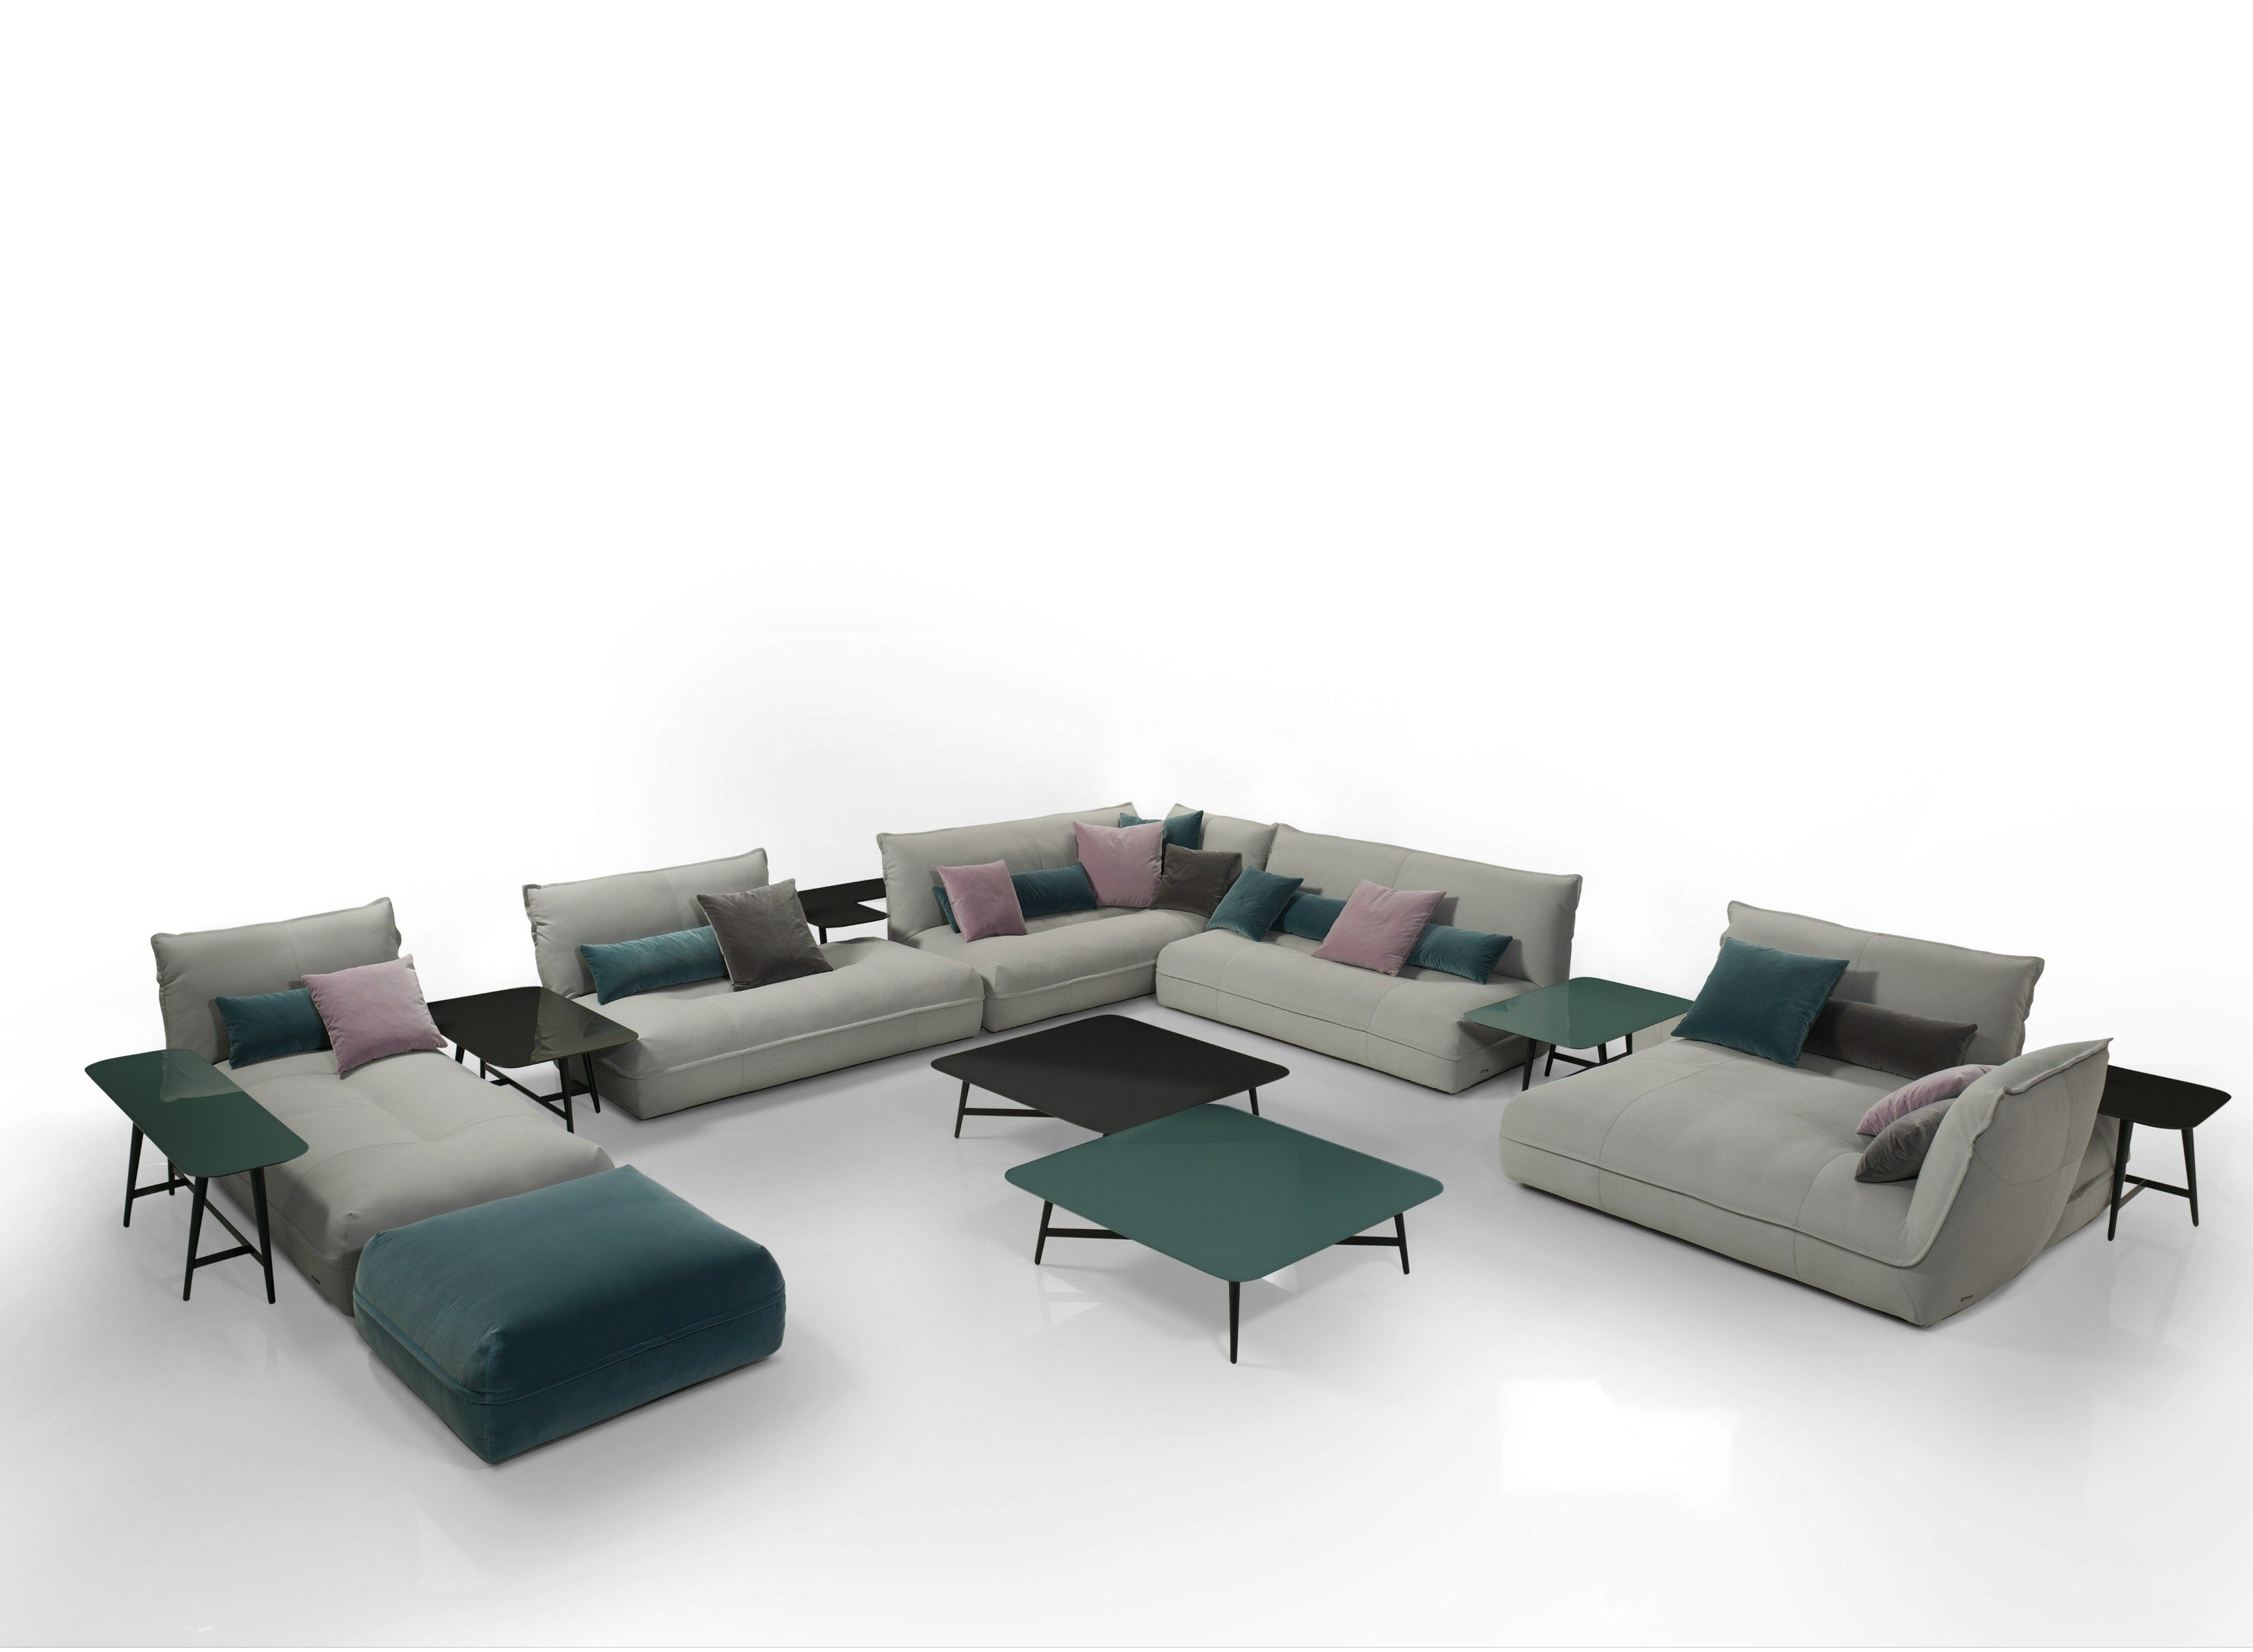 roche bobois Google Search furniture Pinterest